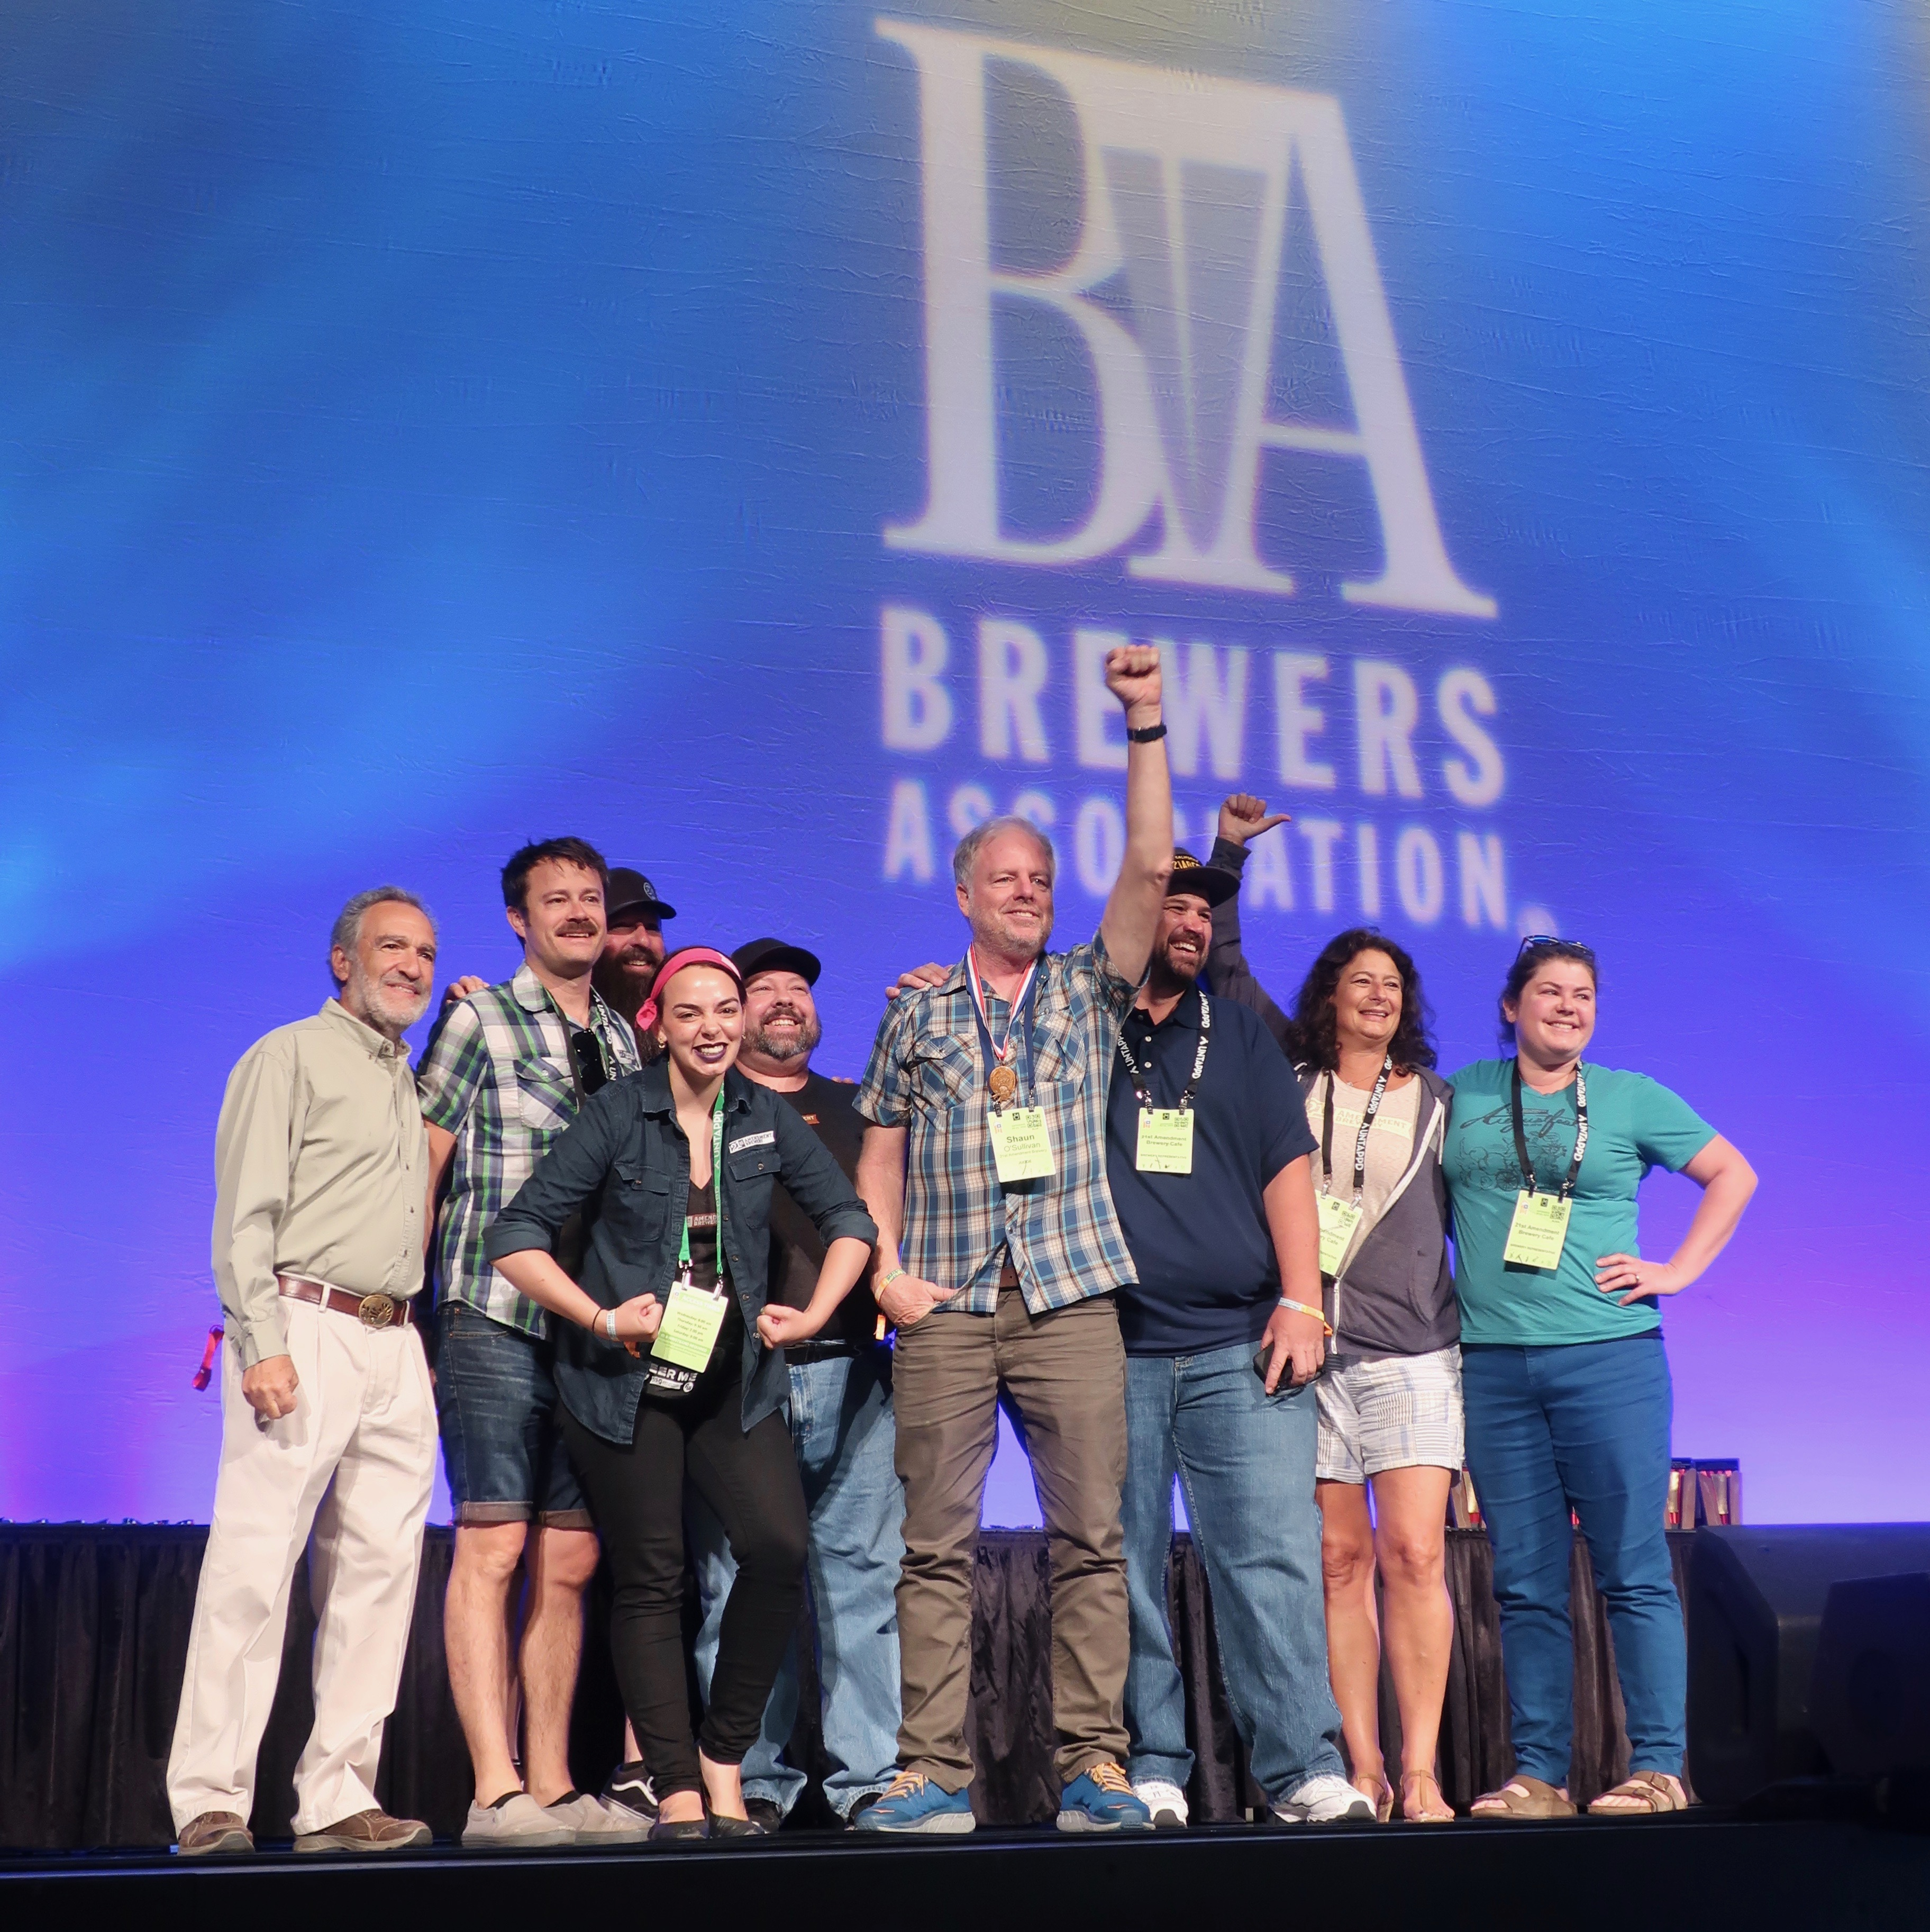 21st Amendment Brewery winning the bronze in American-style cream ale for El Sully at the 2018 Great American Beer Festival.